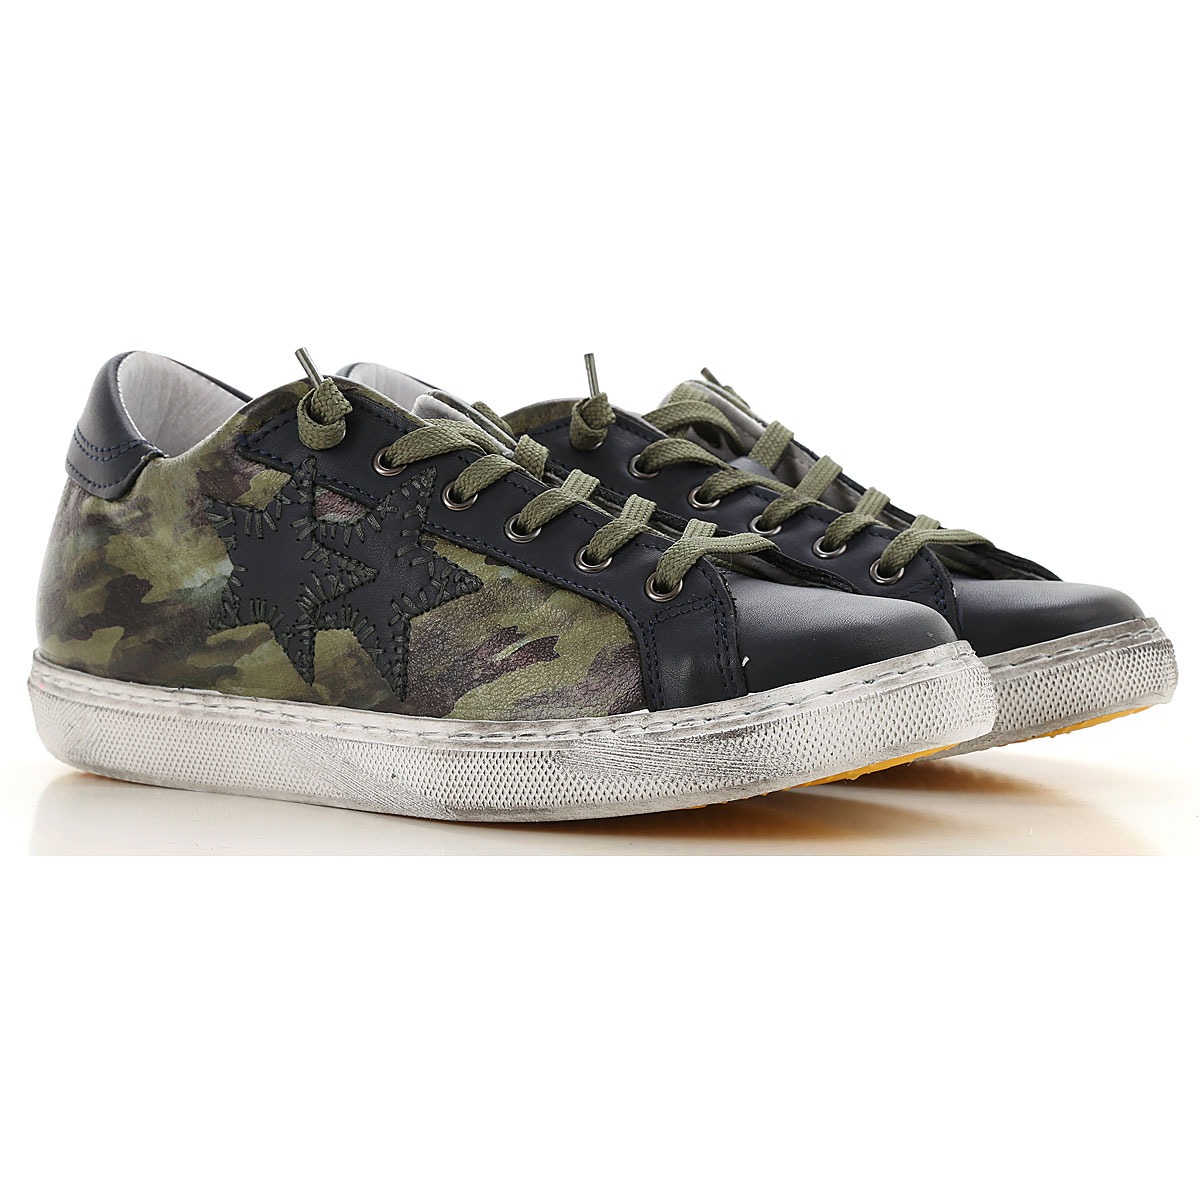 Image of 2Star Kids Shoes for Boys, Dark Green, Leather, 2017, 28 29 30 31 32 33 34 35 36 37